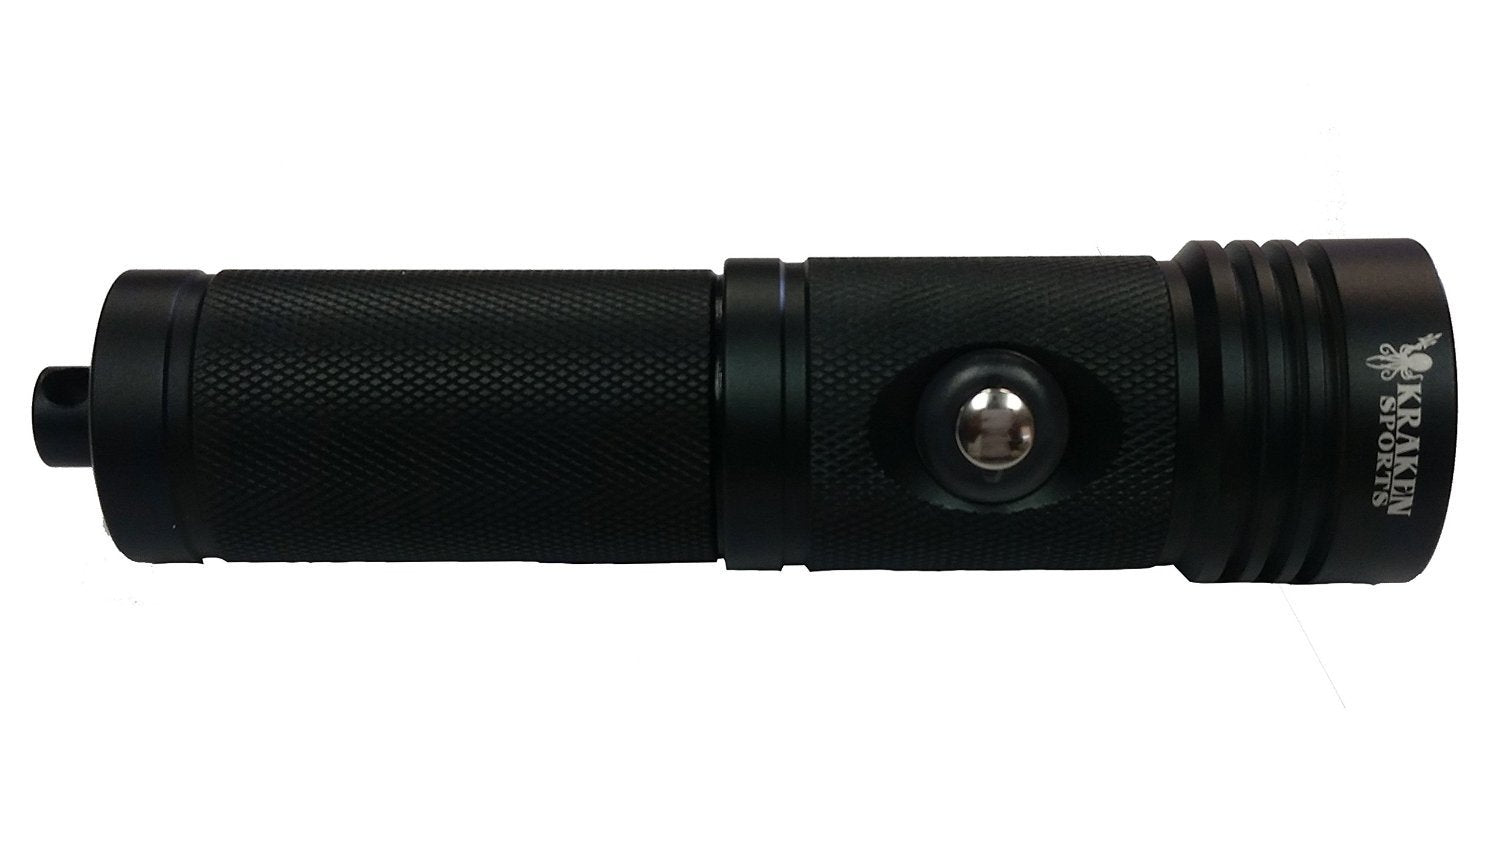 Kraken NR-650 LED Dive Light